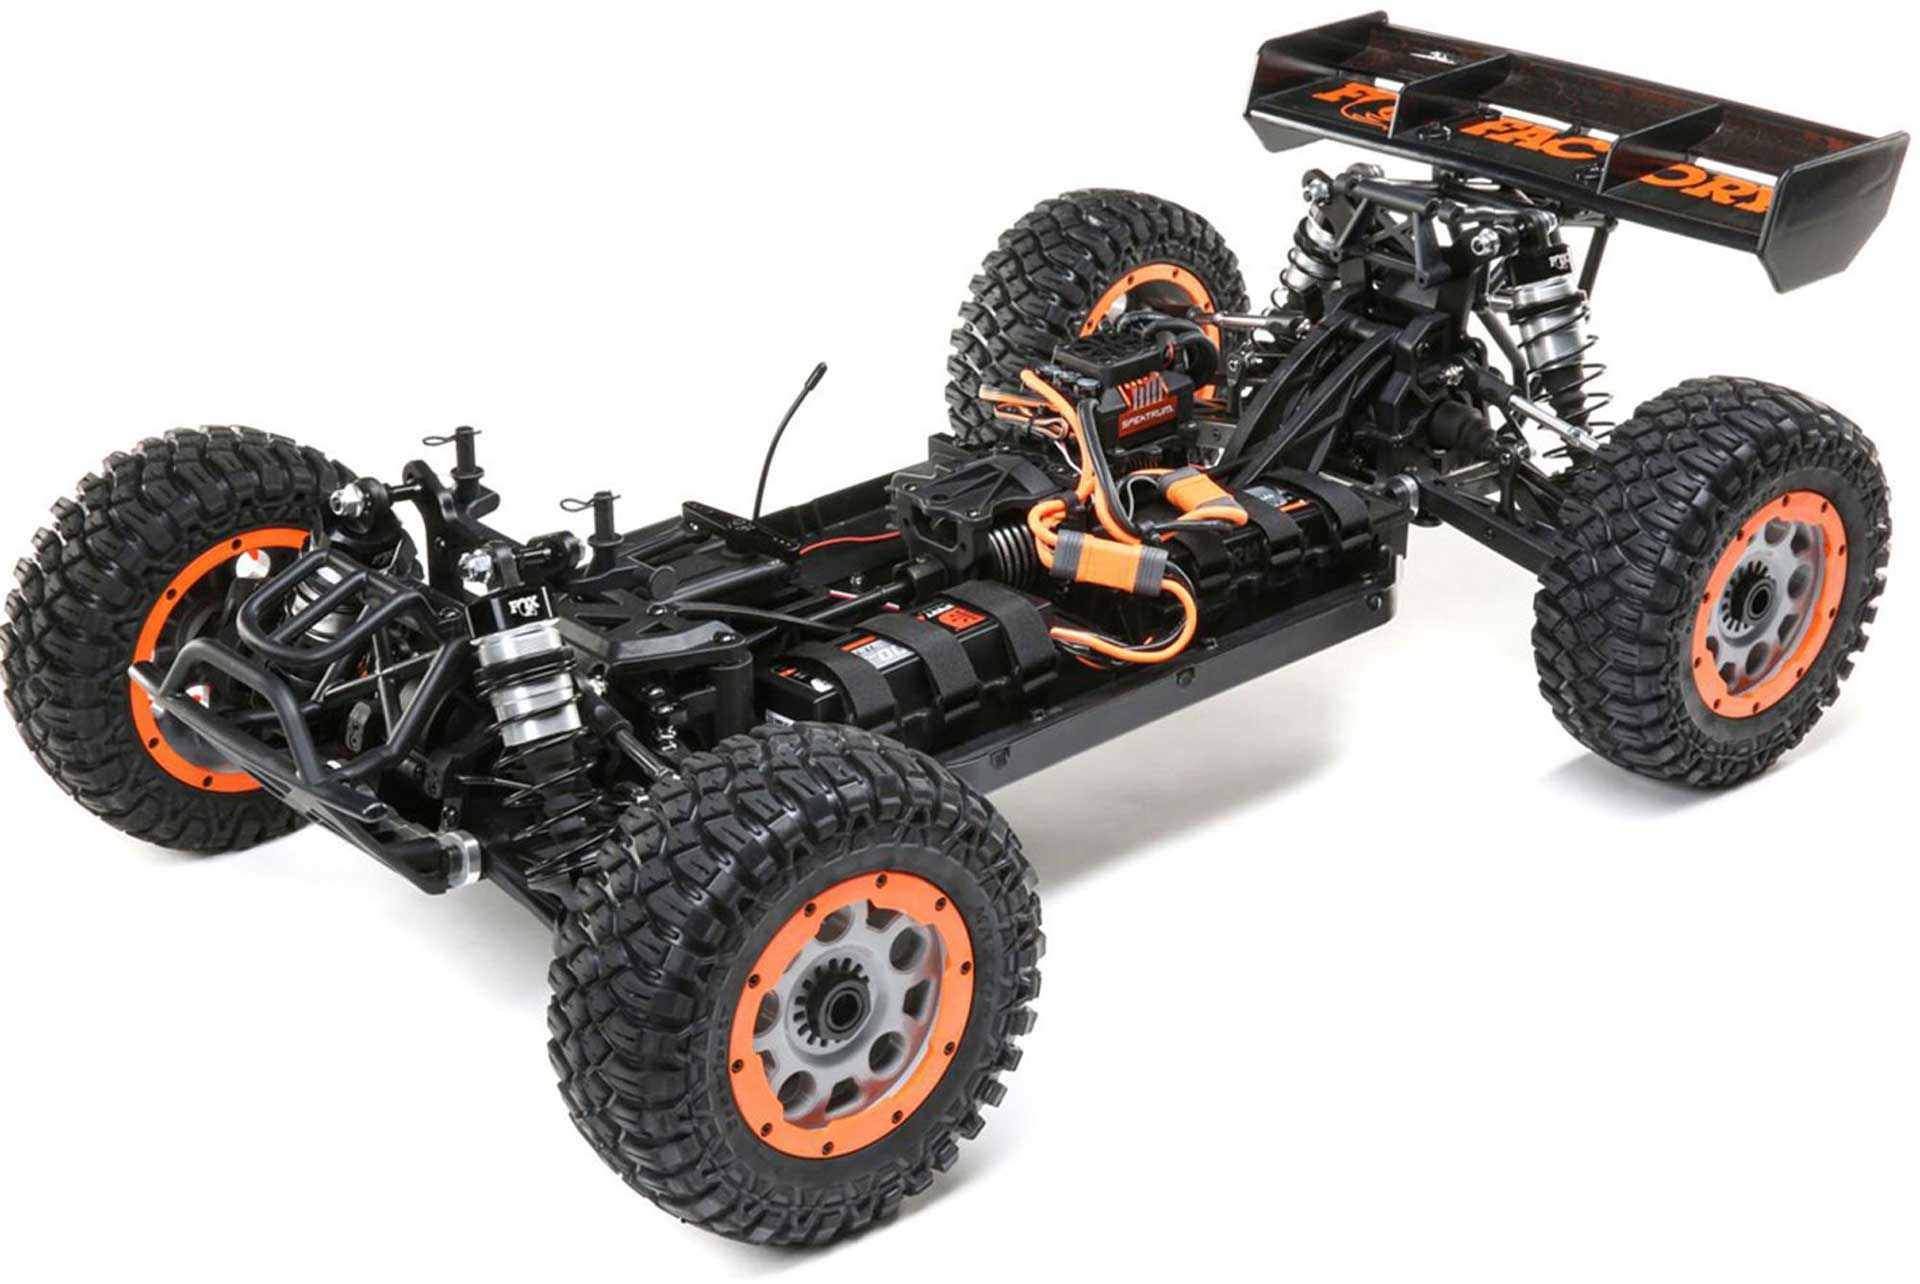 LOSI DBXL-E 2.0 BEAST DESERT BUGGY 4WD 1/5 WITH SMART TECHNOLOGY